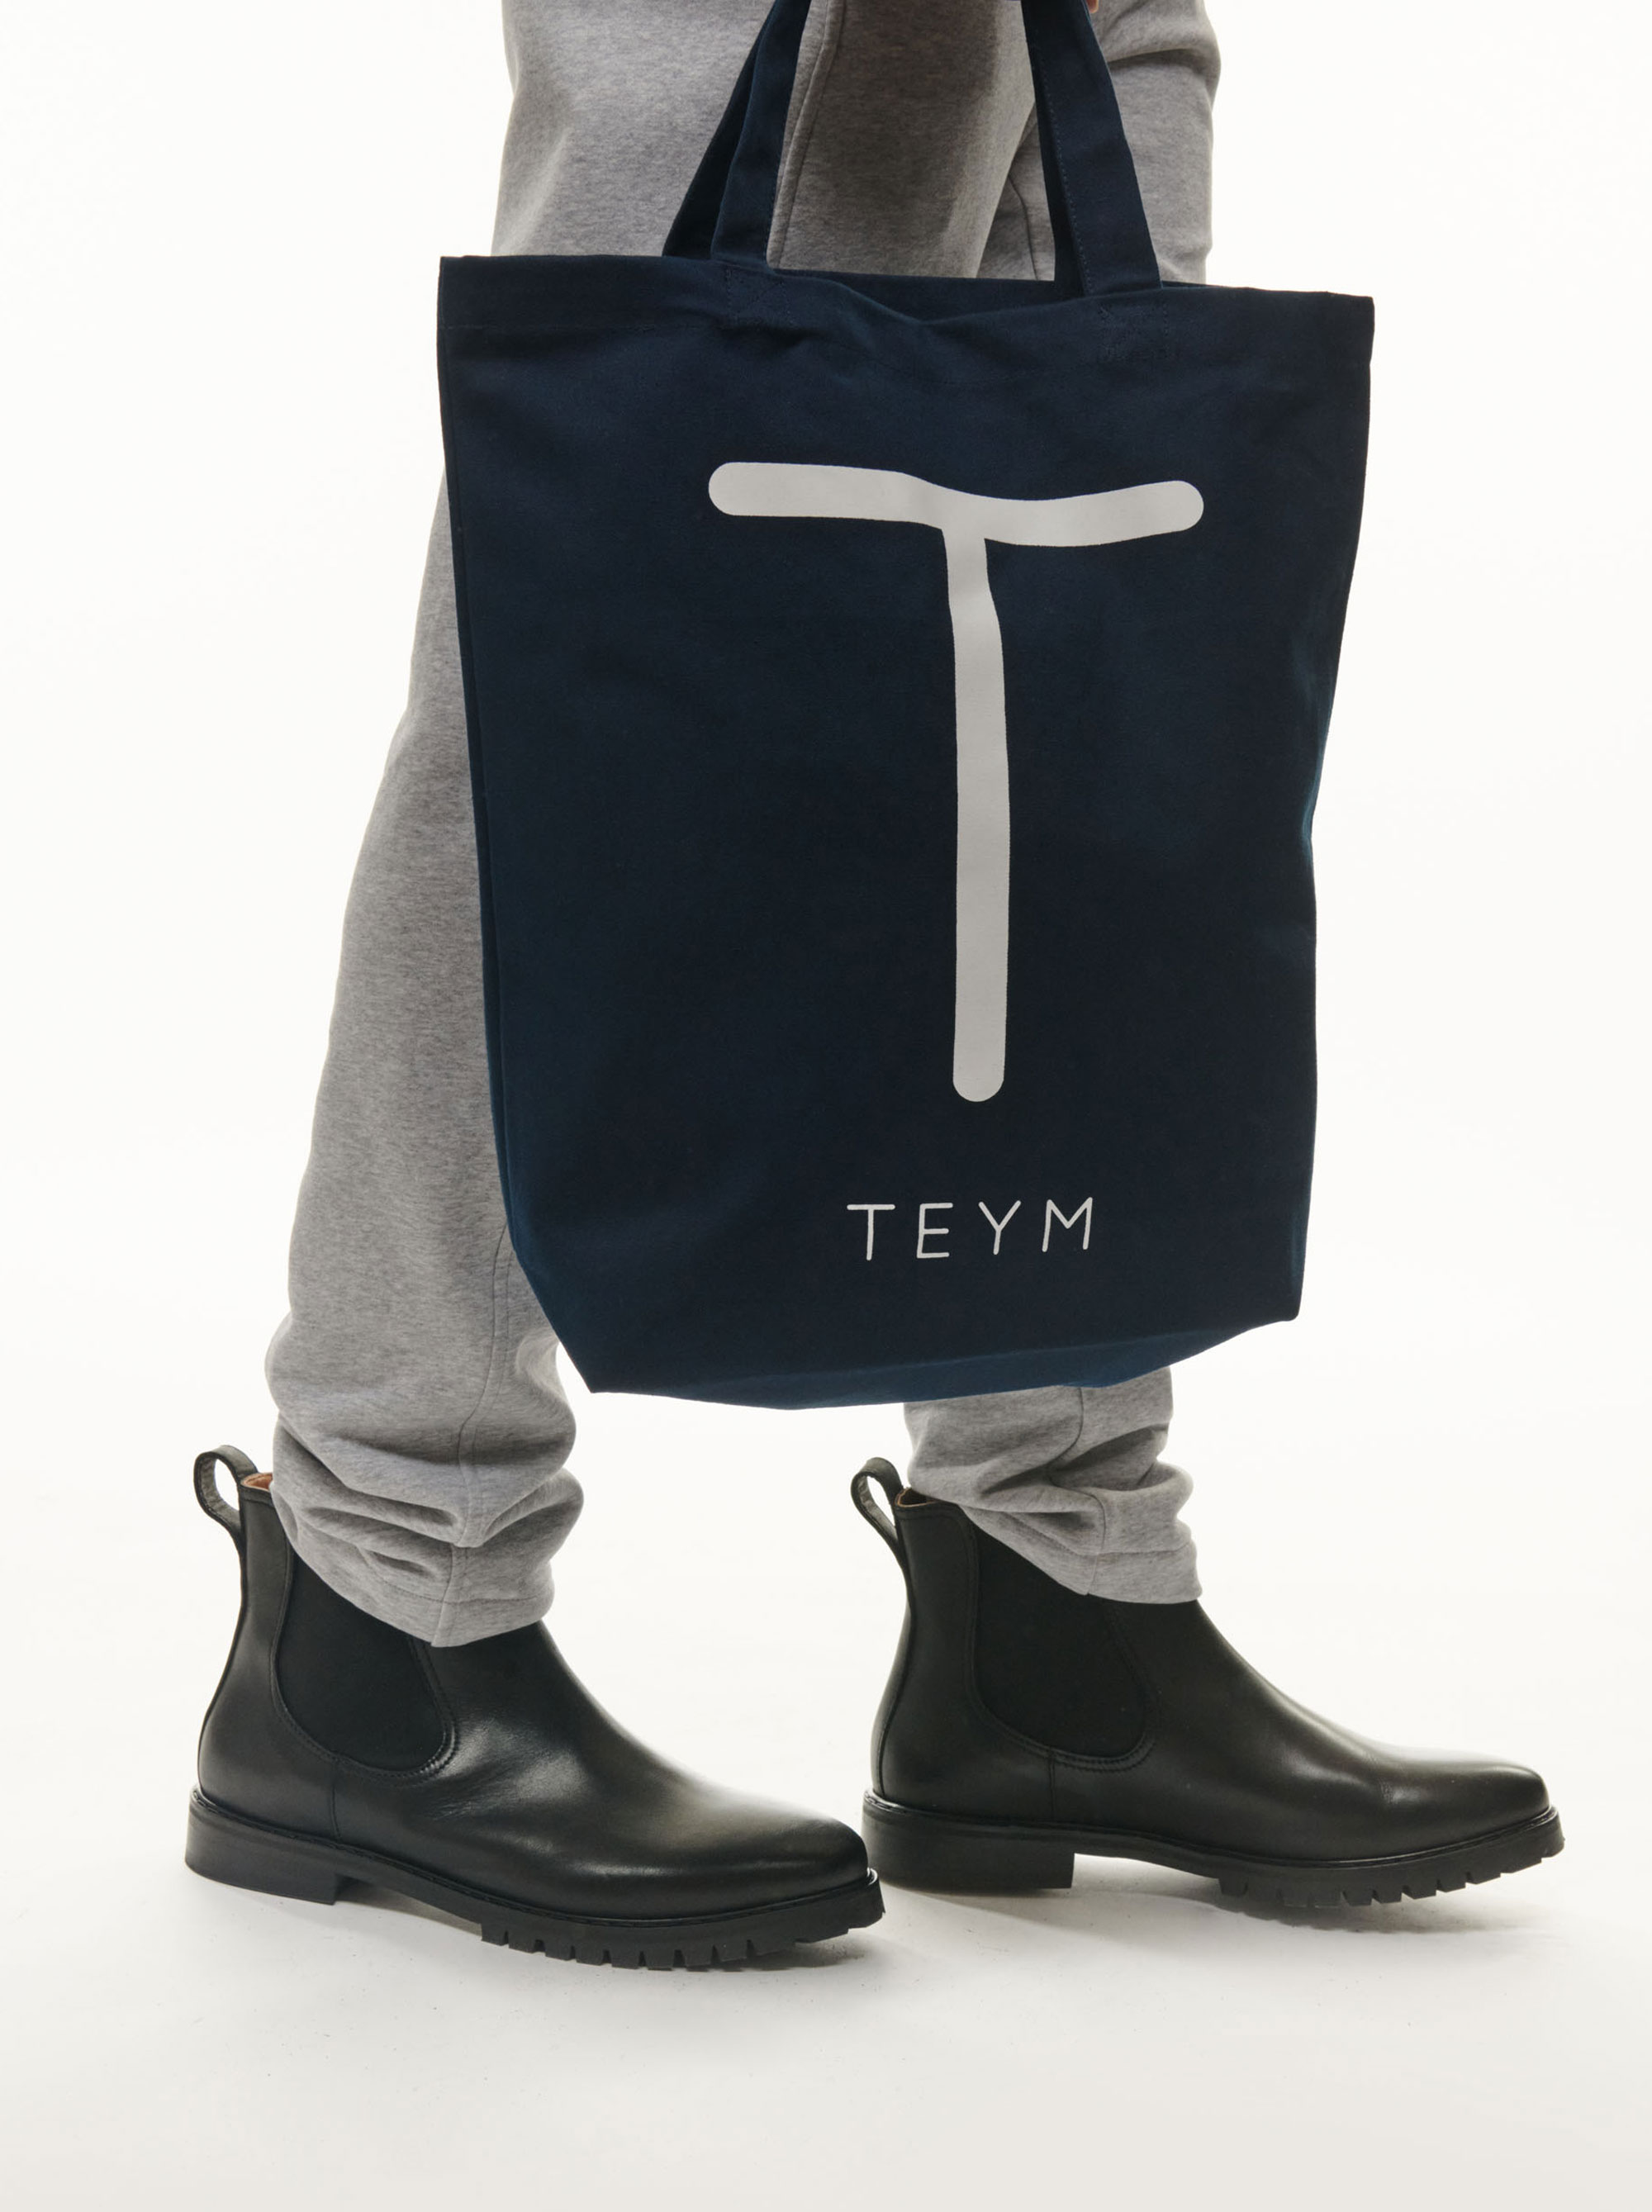 Teym - The Canvas Tote - 3